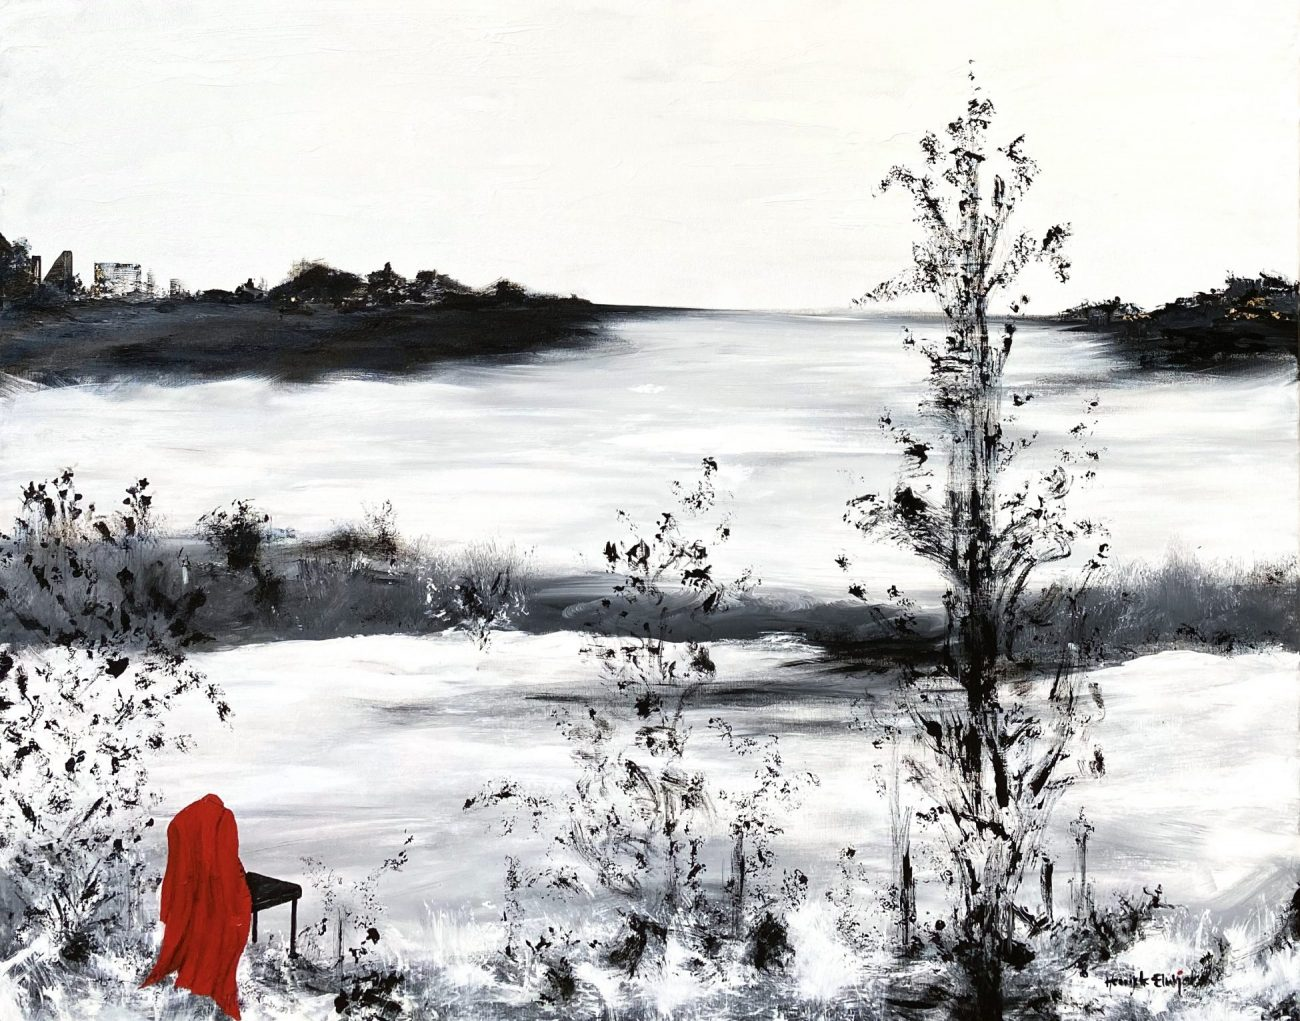 Perspectives – The Red Coat